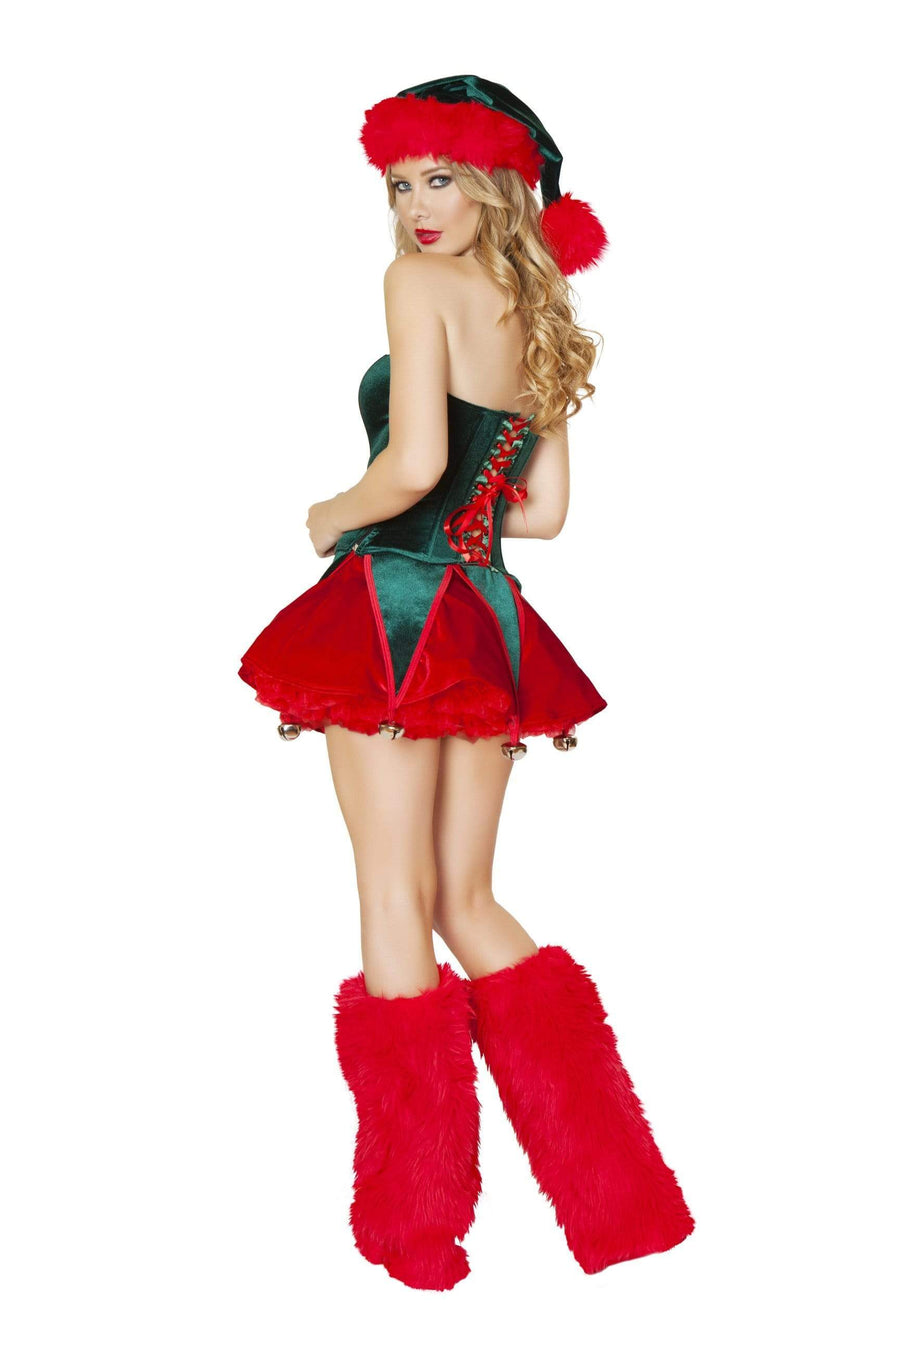 Roma S/M / Green Santa's Naughty Elf Green & Red Velvet Corset & Skirt Christmas Set SHC-C173-S/M-R Apparel & Accessories > Costumes & Accessories > Costumes